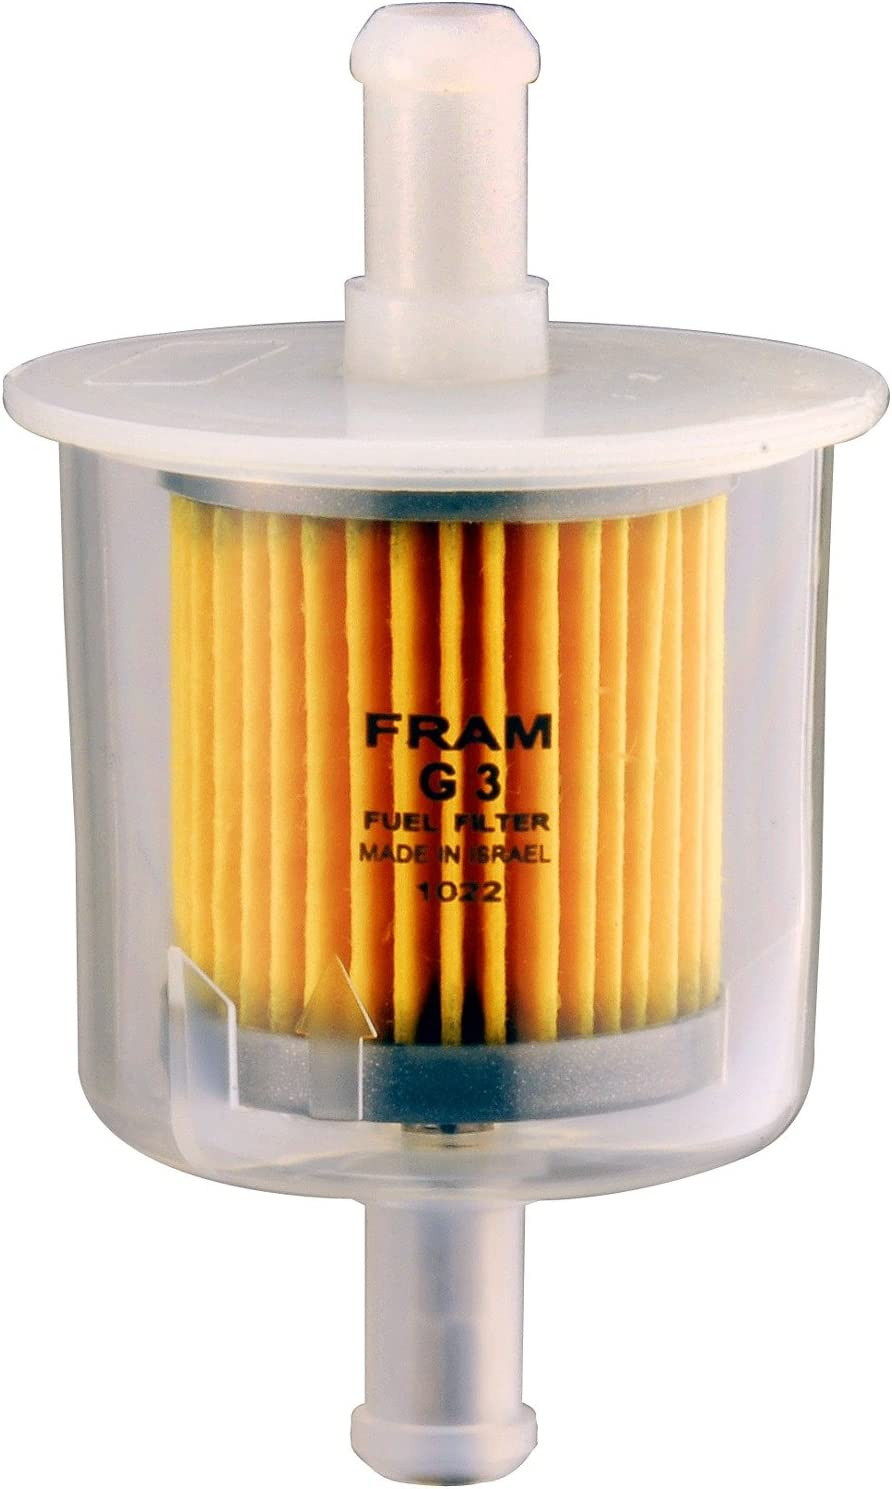 Amazon.com: FRAM G3 In-Line Fuel Filter: AutomotiveAmazon.com